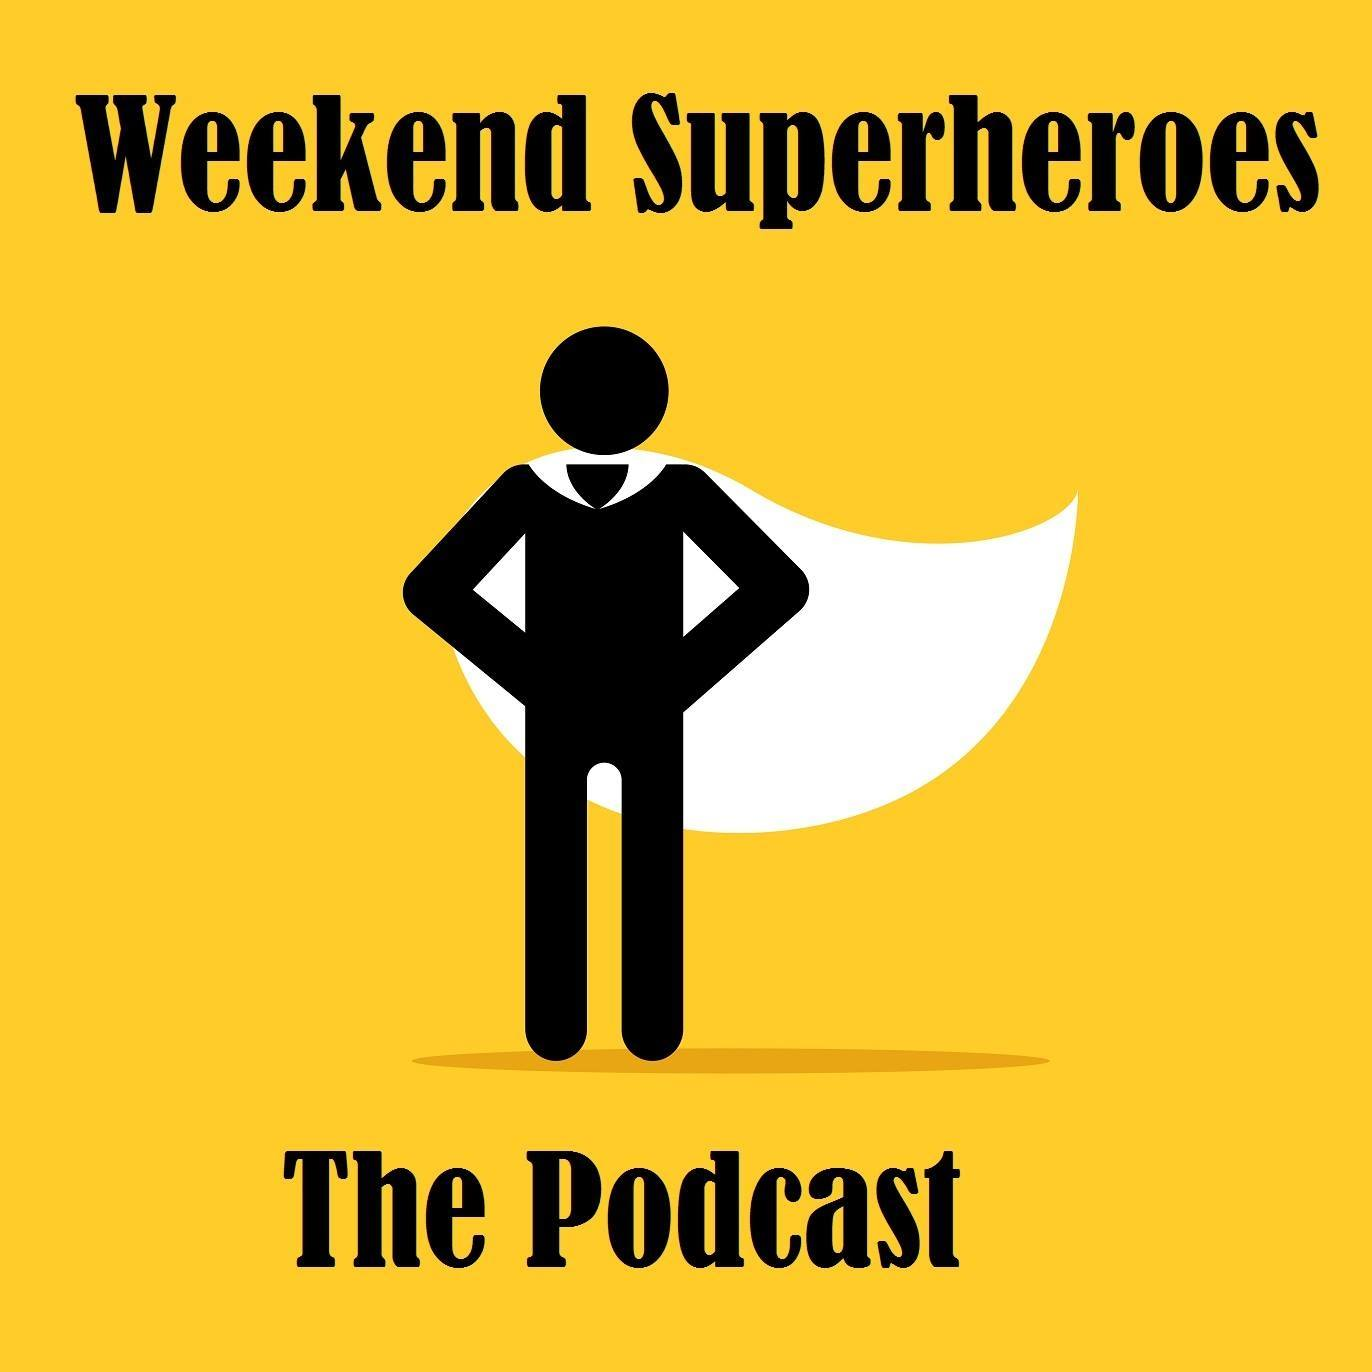 Weekend Superheroes - Podcast - Interview With Trans Woman Autumn Asphodel